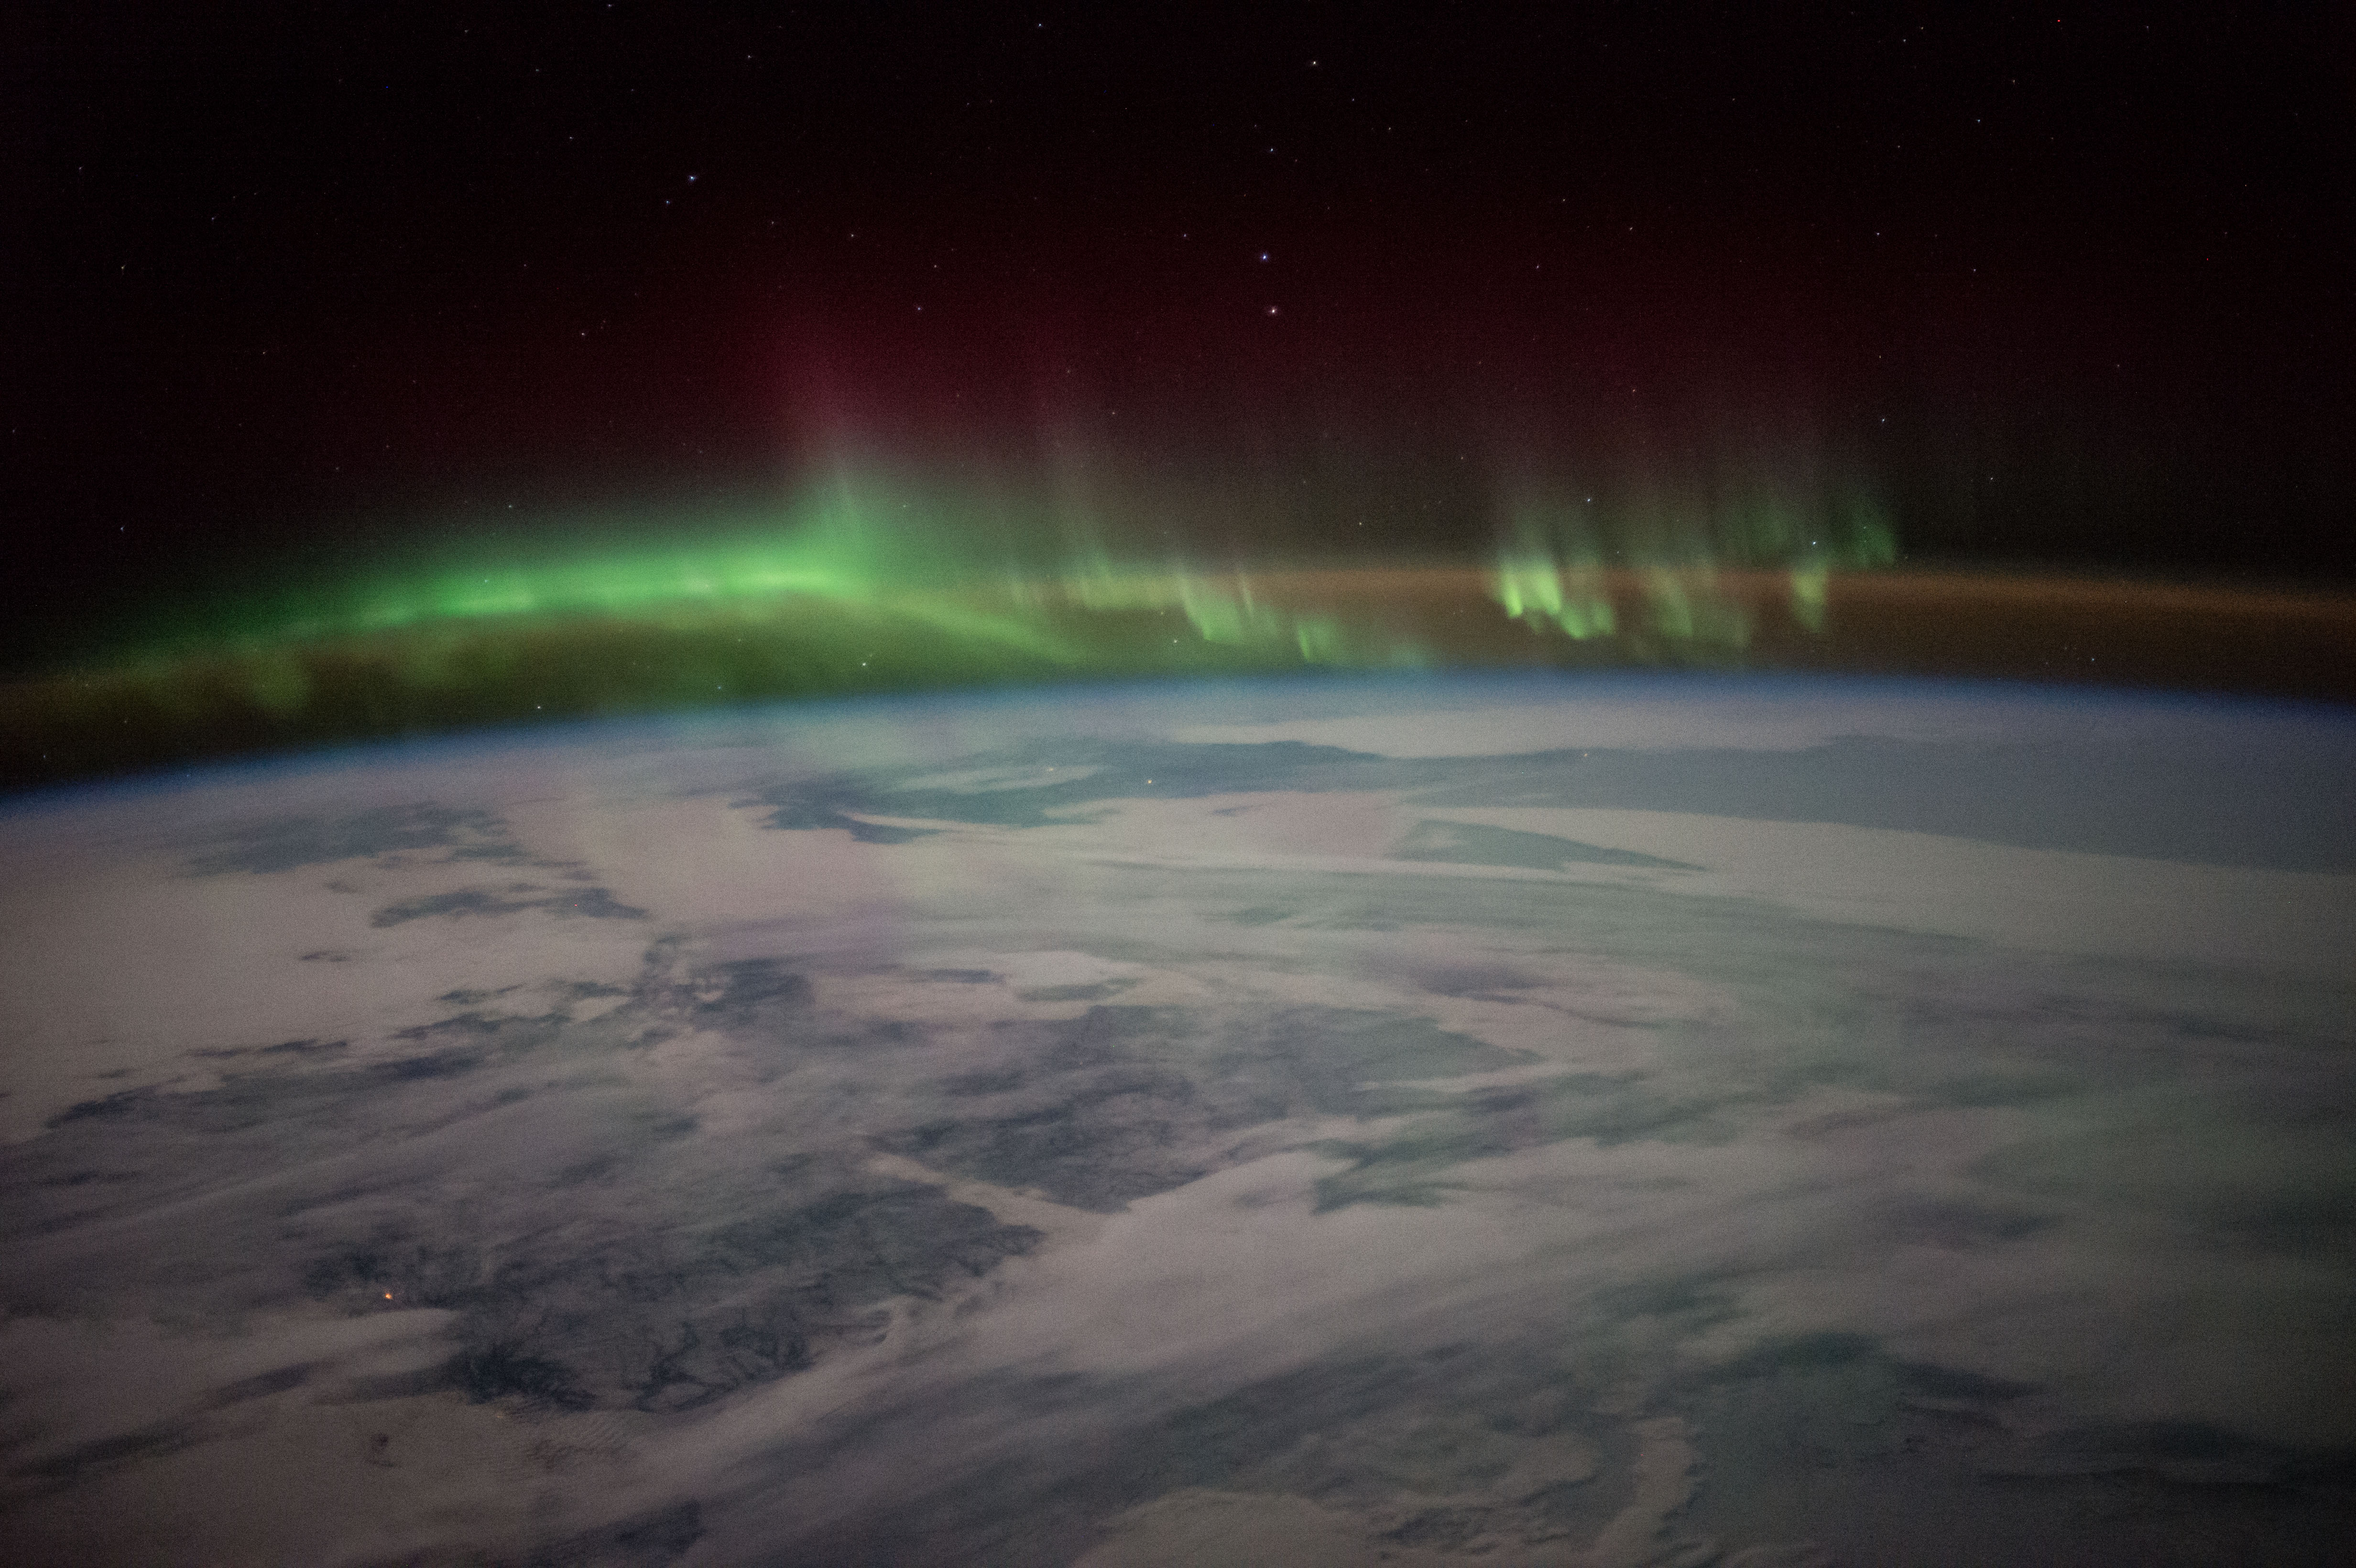 File:ISS-46 Aurora over nocturnal Canada jpg - Wikimedia Commons